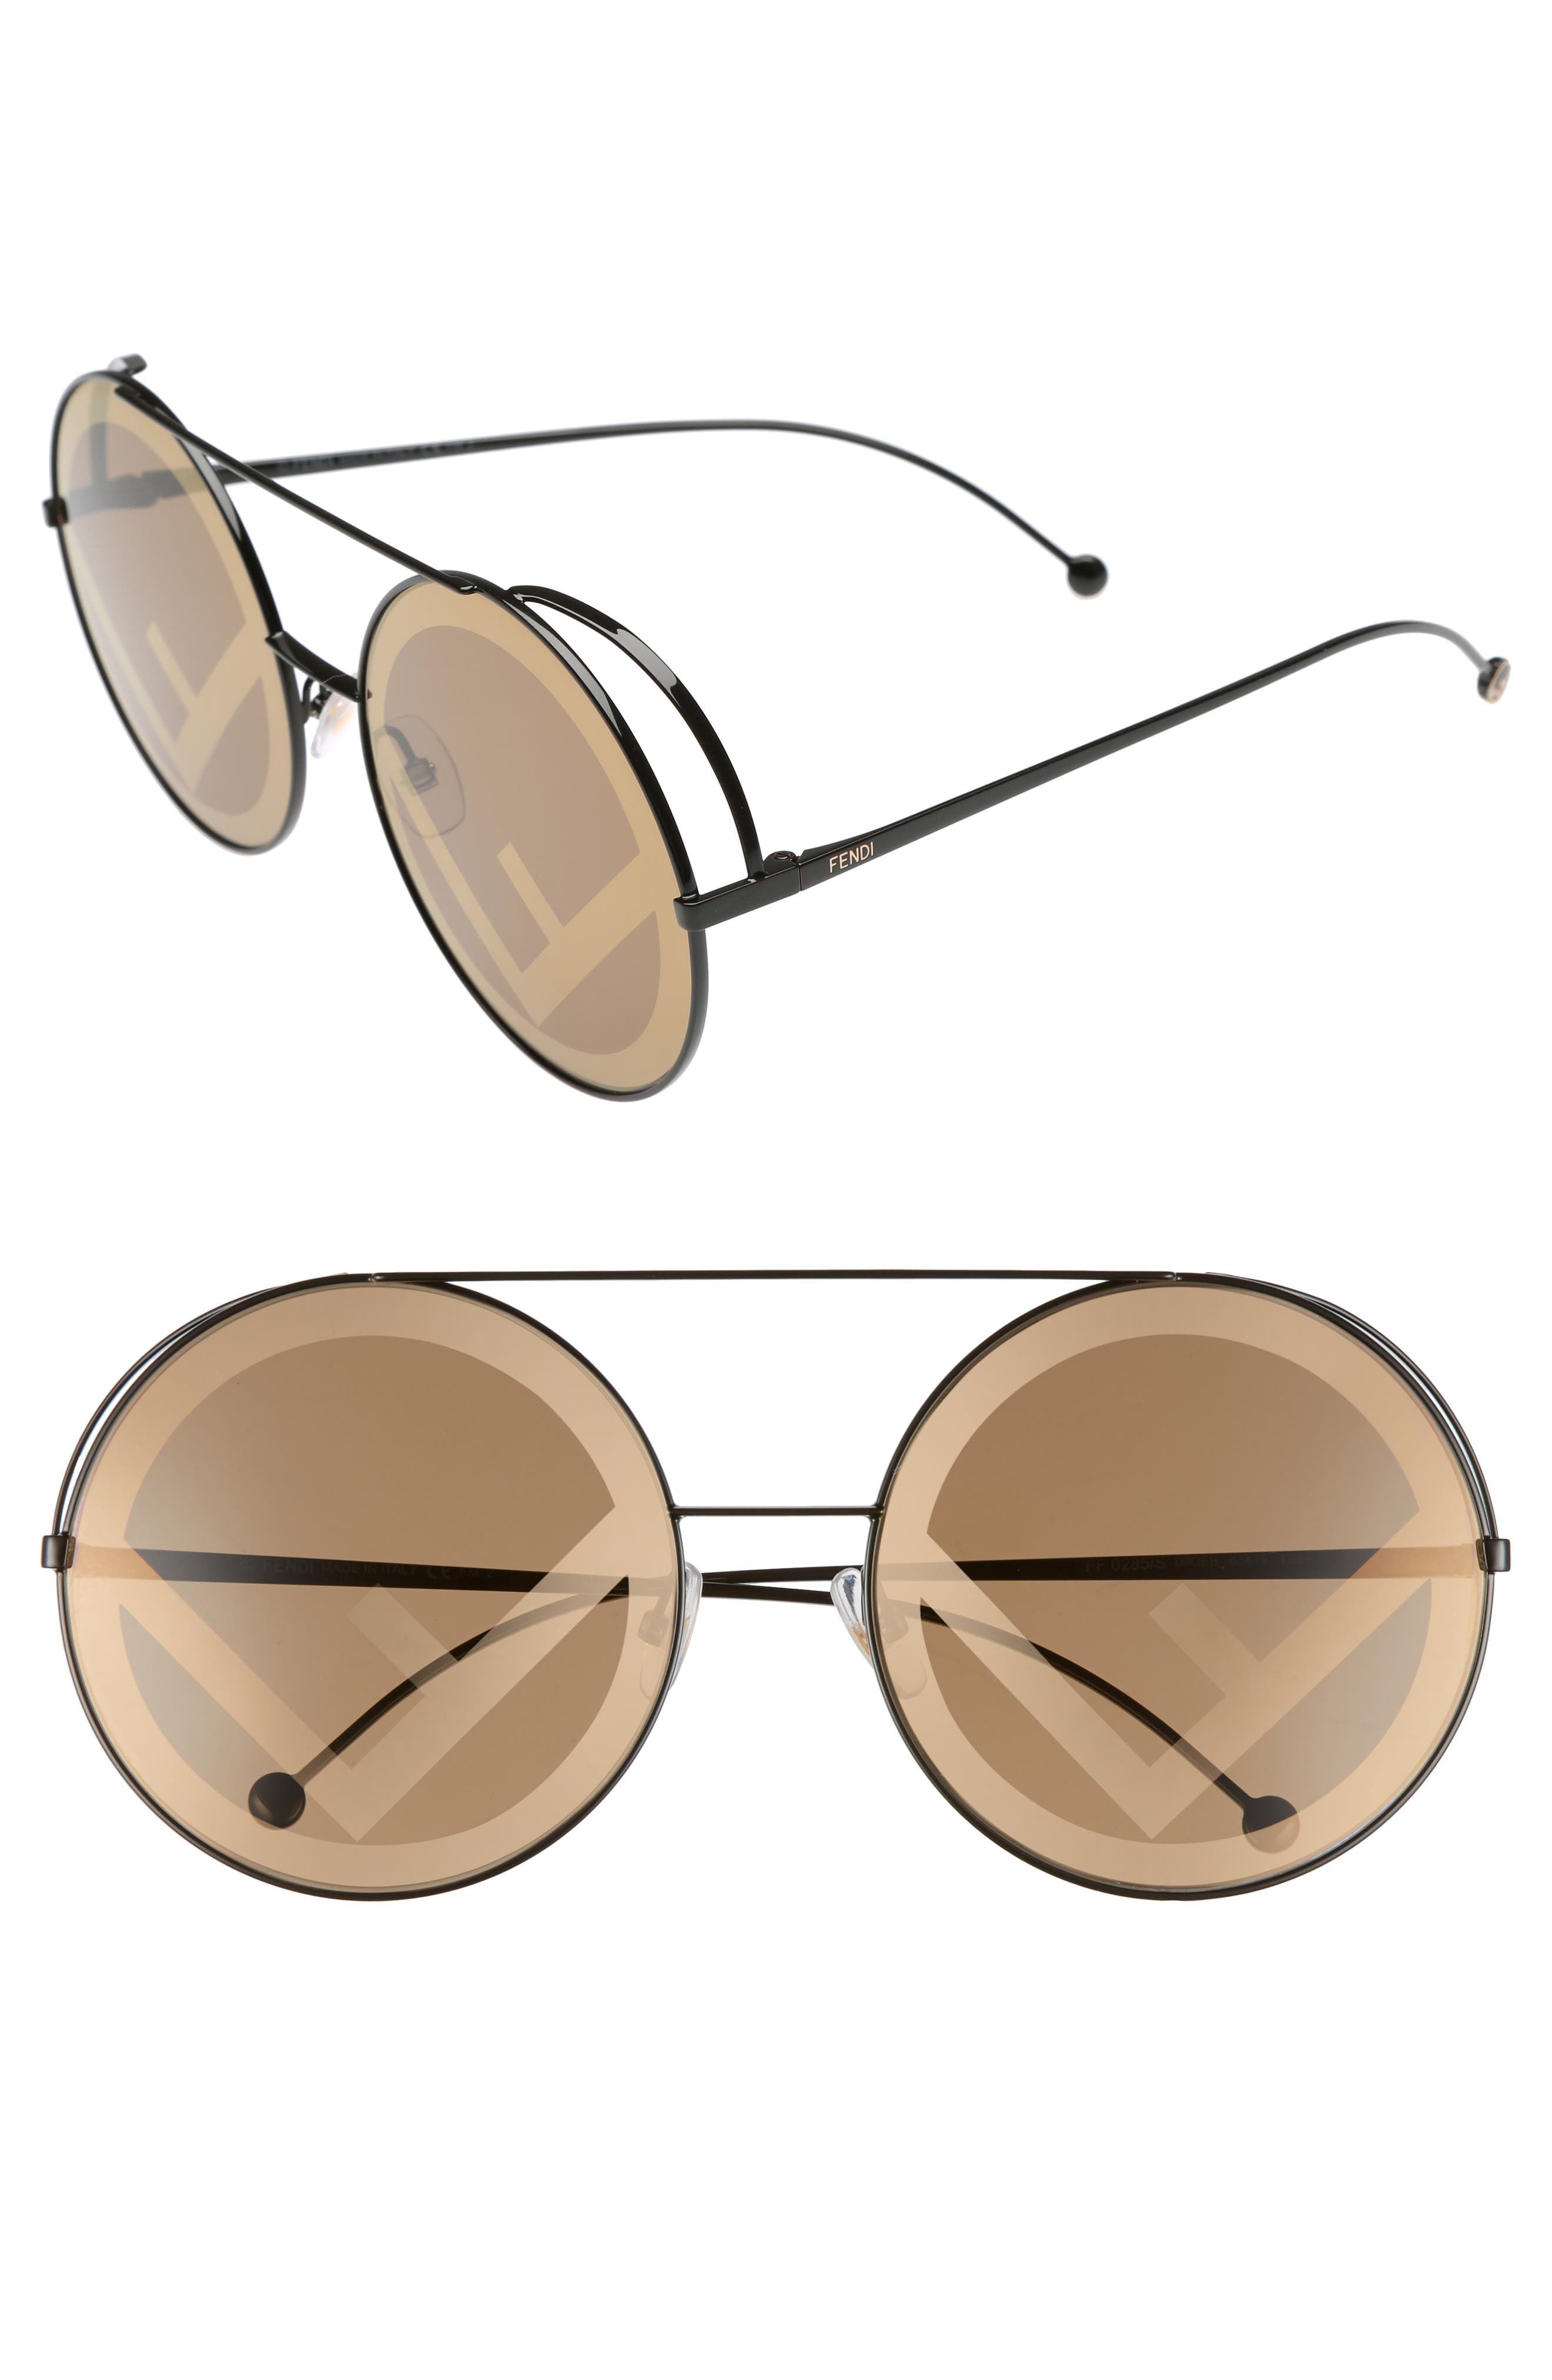 Run Away 63mm Round Sunglasses,                             Main thumbnail 1, color,                             Brown